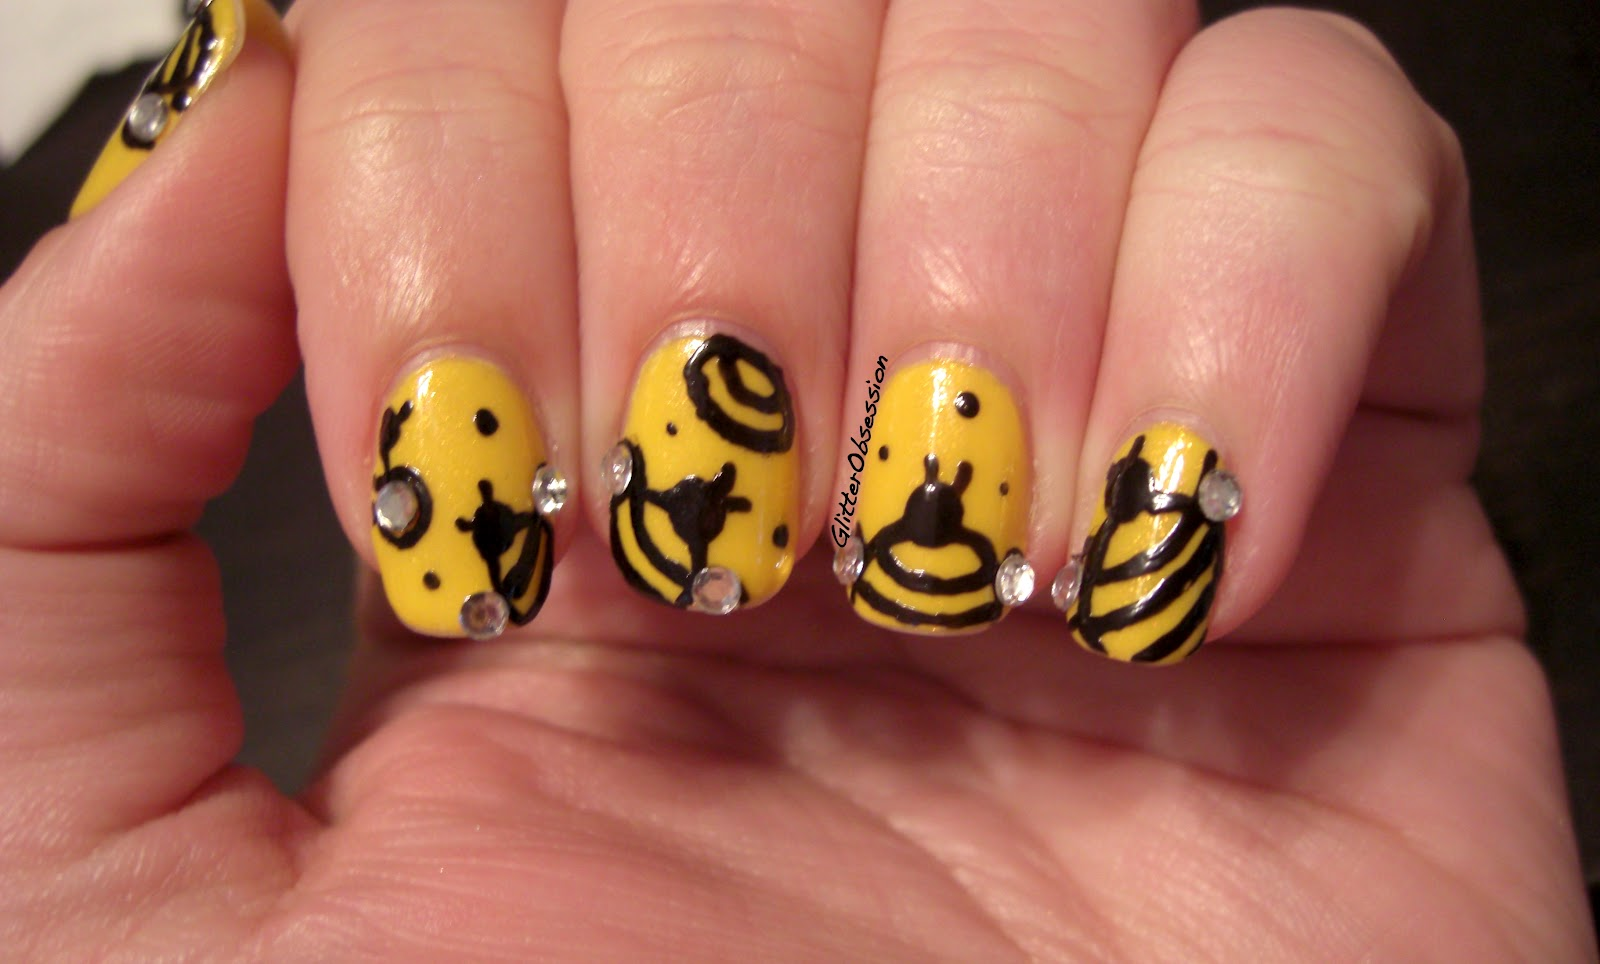 Glitter obsession march 2012 nail art bumble bees honey bees honey bee nail art bumble bee prinsesfo Image collections